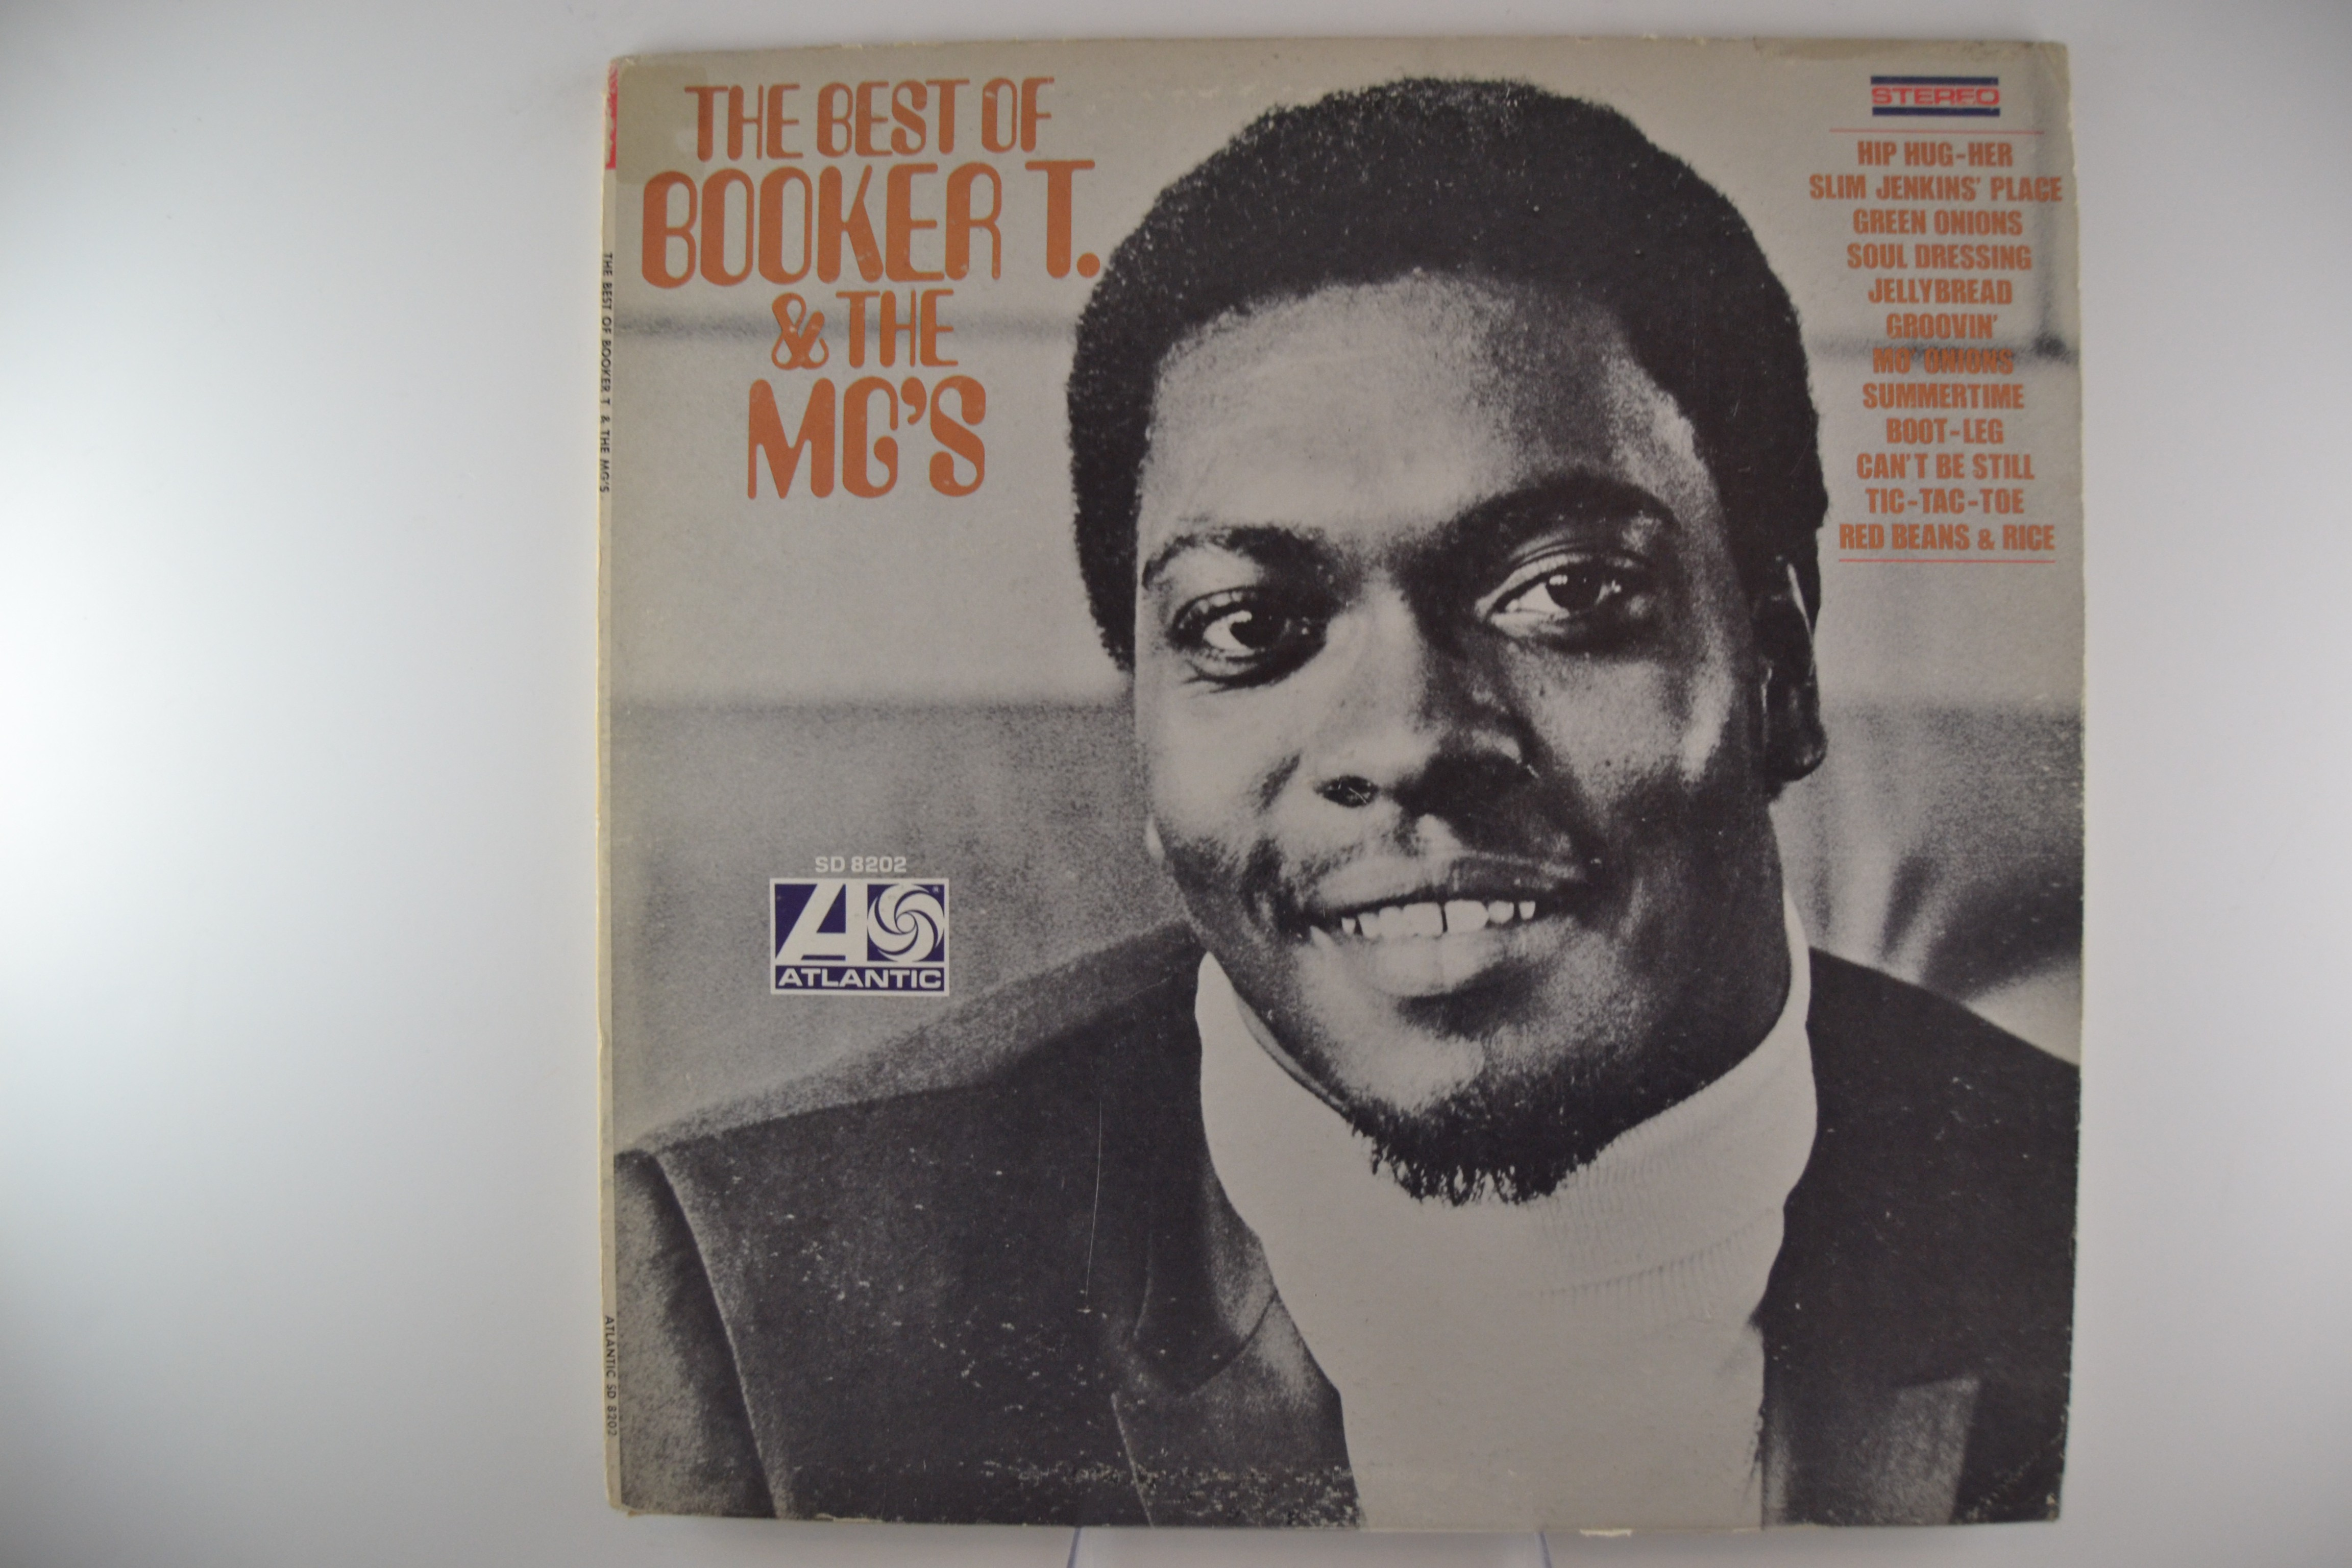 """BOOKER T. & THE MG's  : """"The Best of Booker T. & The MG's"""""""